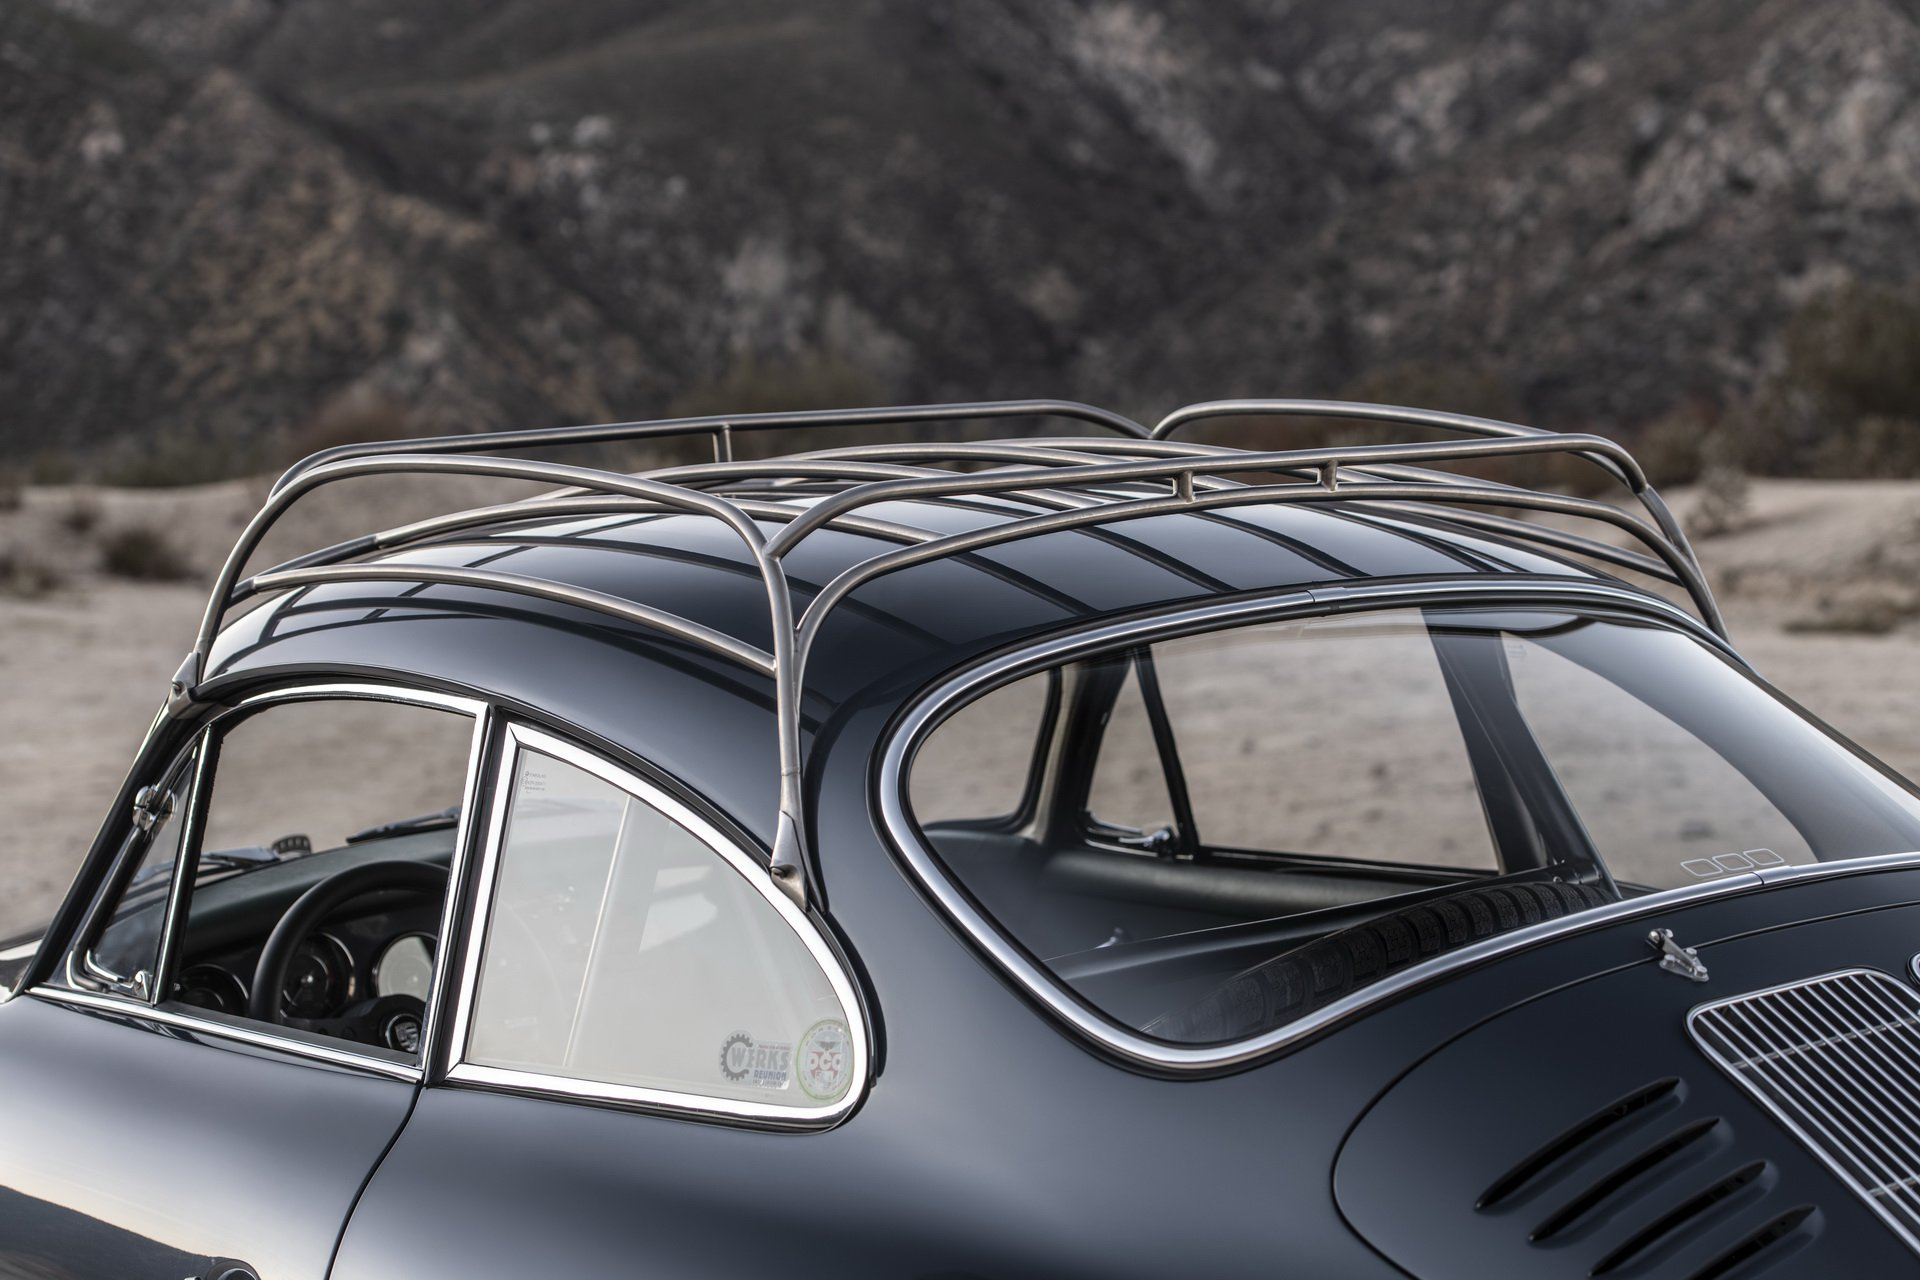 AWD Porsche 356 Coupe by Emory Motorsports (57)